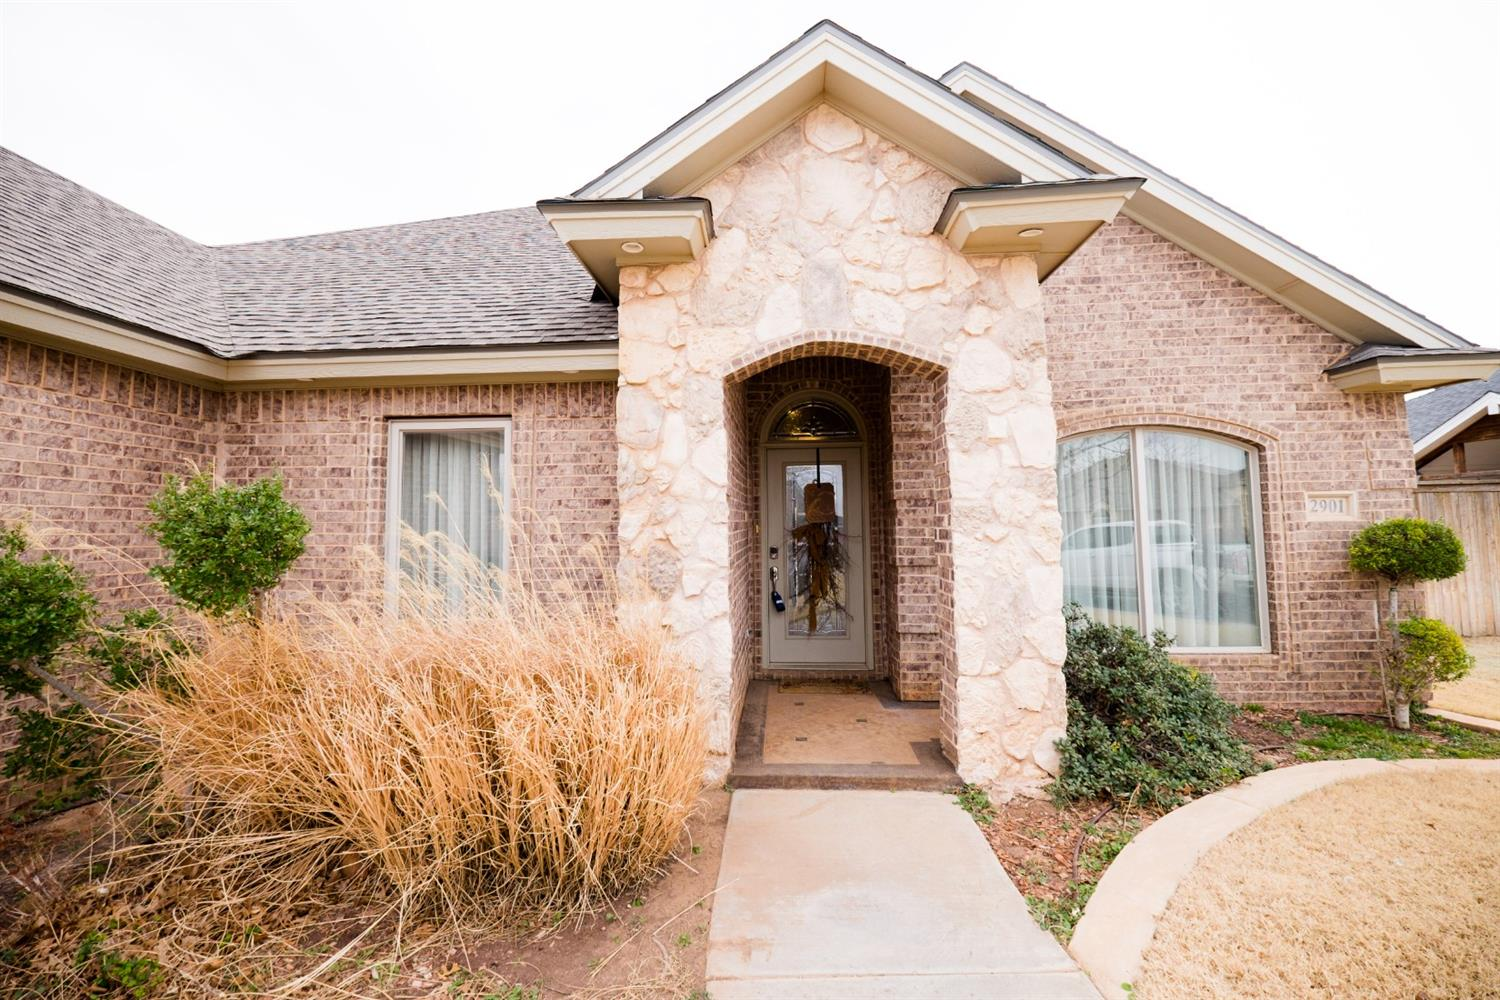 2901 110th Street, Lubbock in Lubbock County, TX 79423 Home for Sale